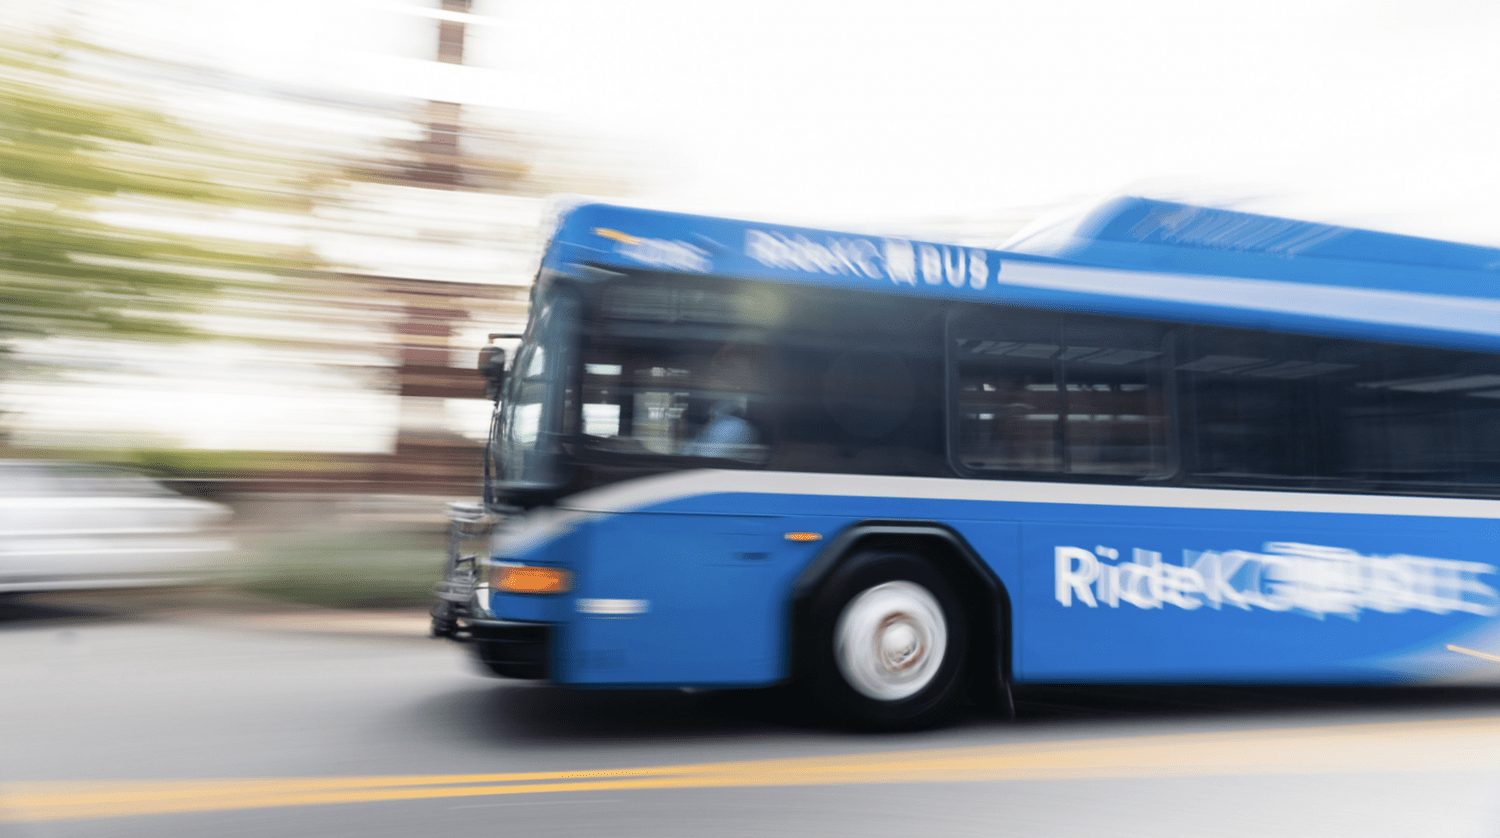 From Fixed Routes to Flex Routes: Additional Responses to the May 13 Webinar